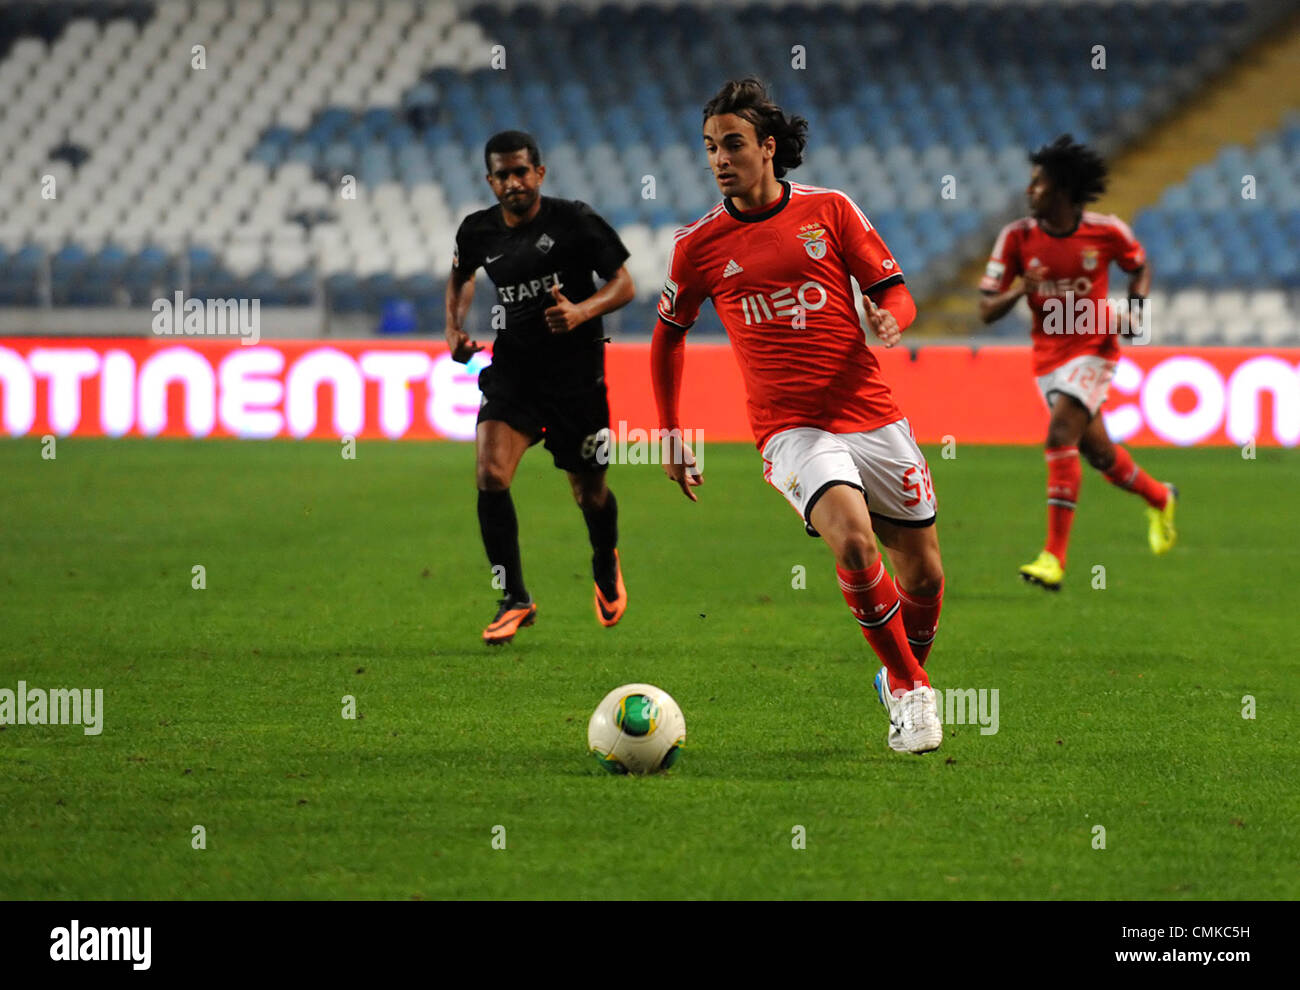 Serbian striker Lazar Markovic of Benfica runs with the ball during the portuguese Liga Zon Sagres football match - Stock Image